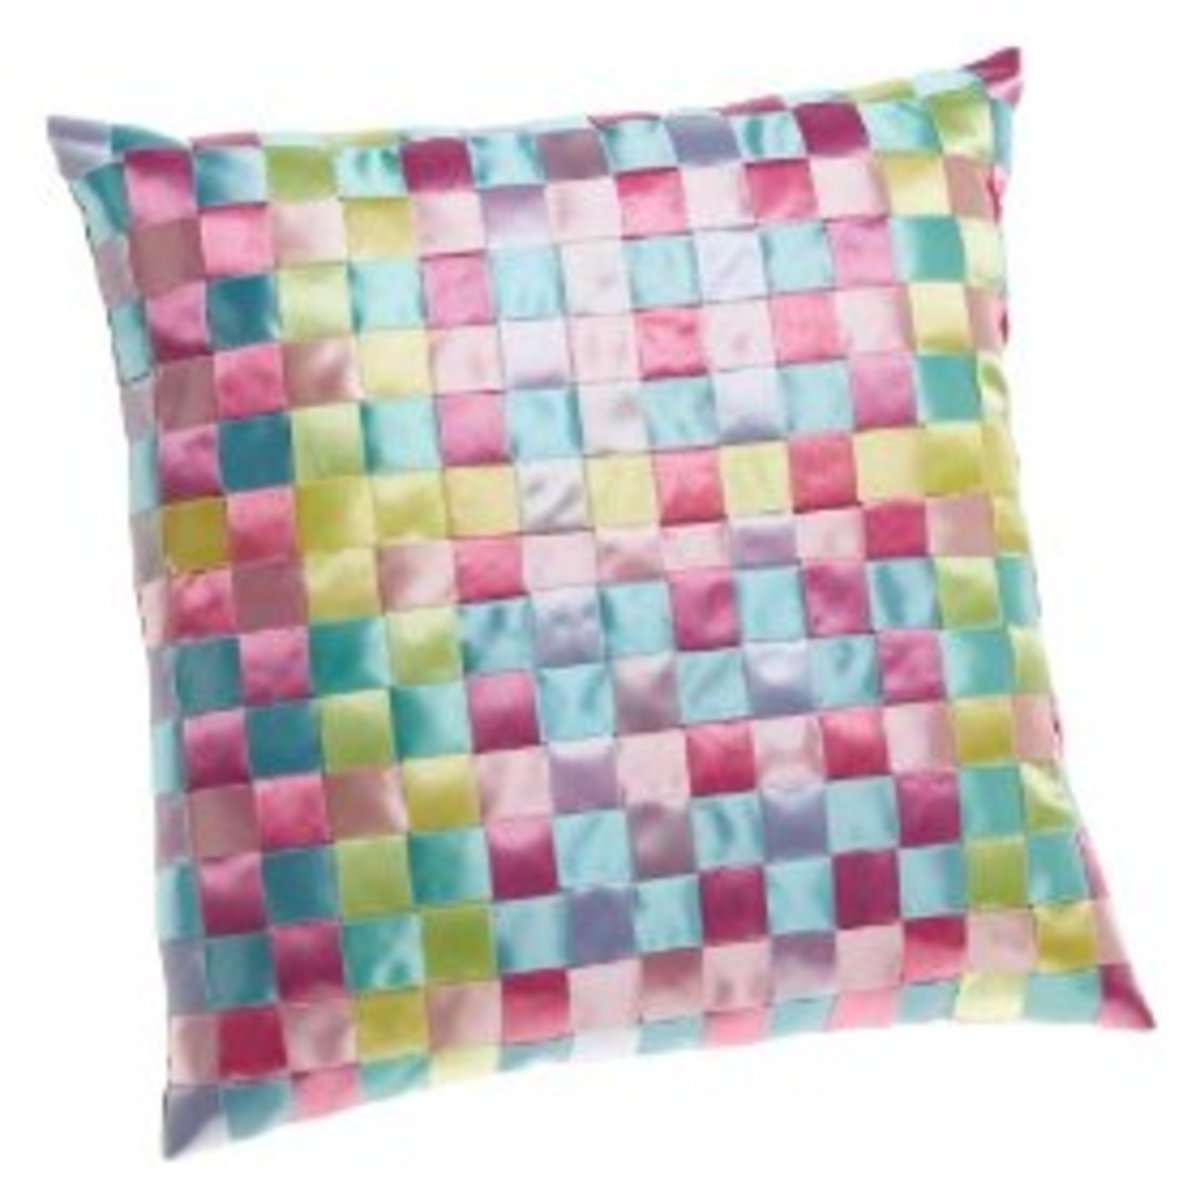 Crafts & Handiwork - Weaving Your Home Decor Spell With Woven Ribbon Pillow Covers